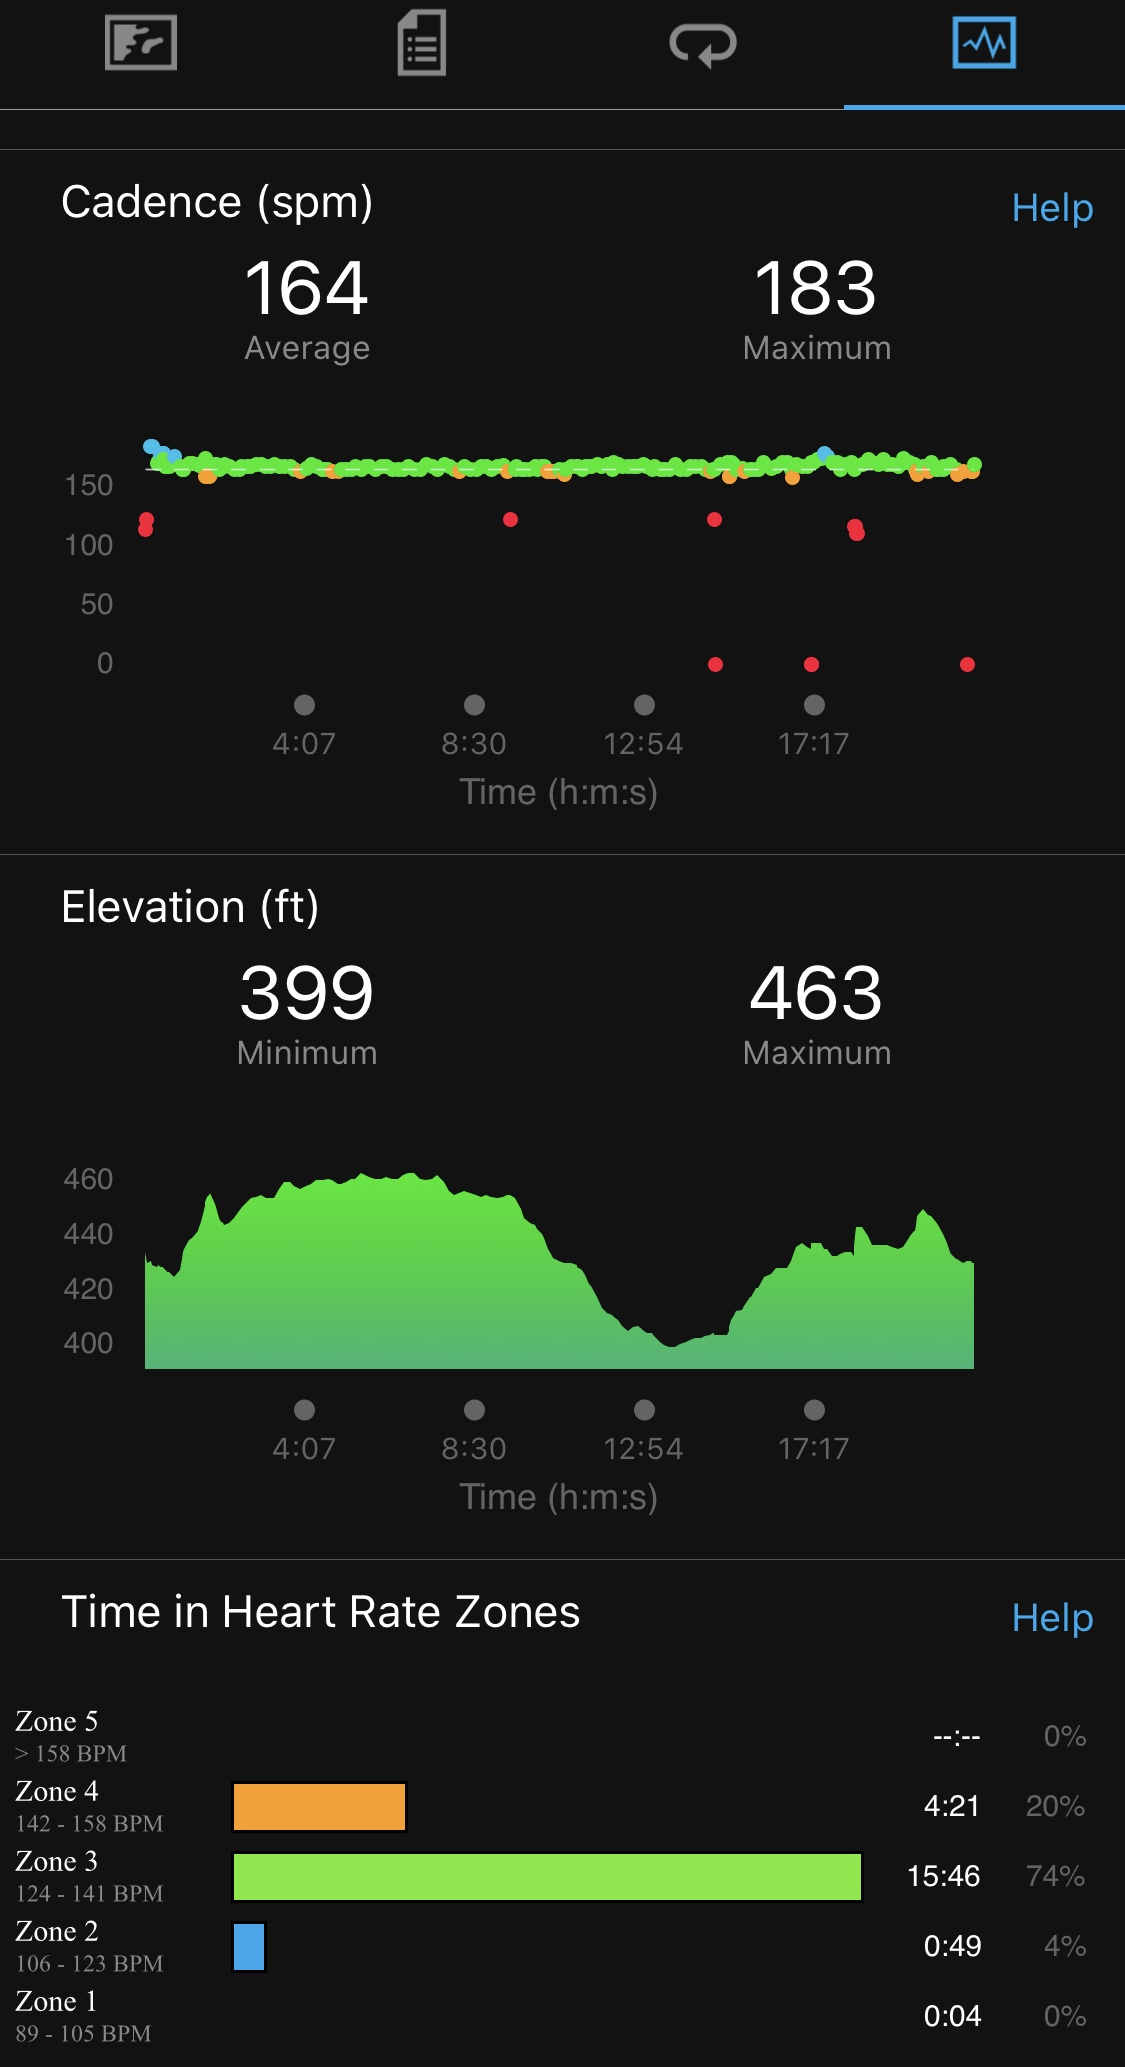 Cadence, Elevation and Heart Rate Zones